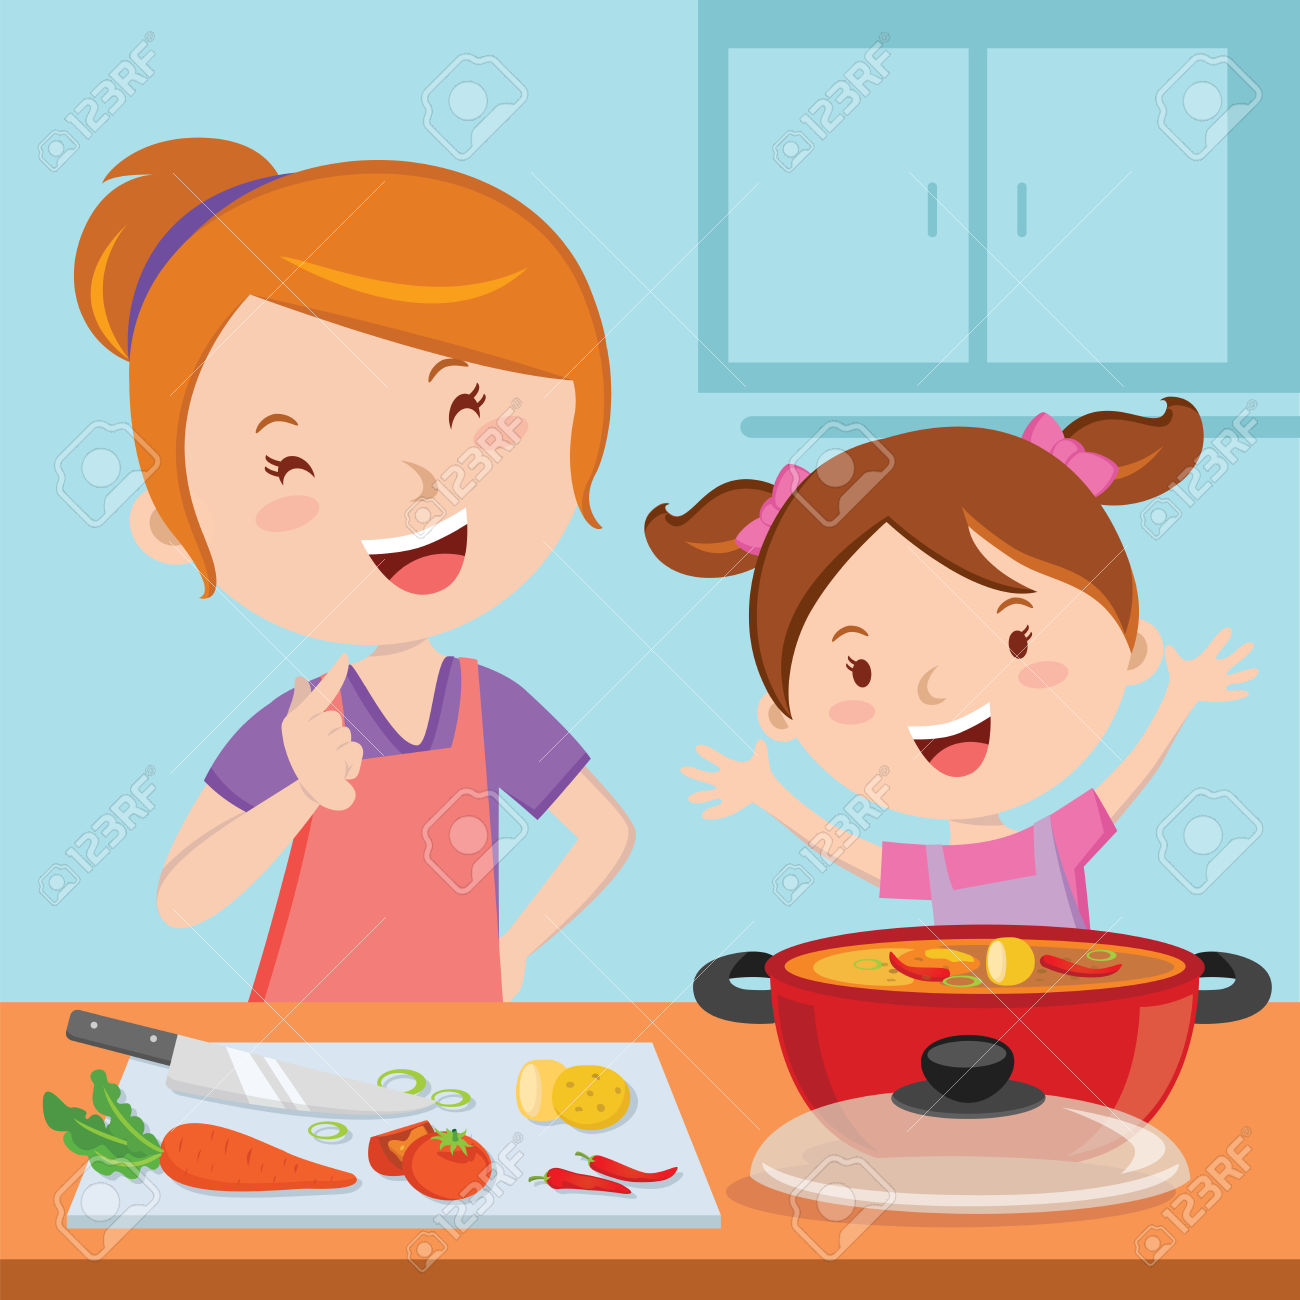 The Kitchen clipart home cooked meal Cook collection dinner Boy meal